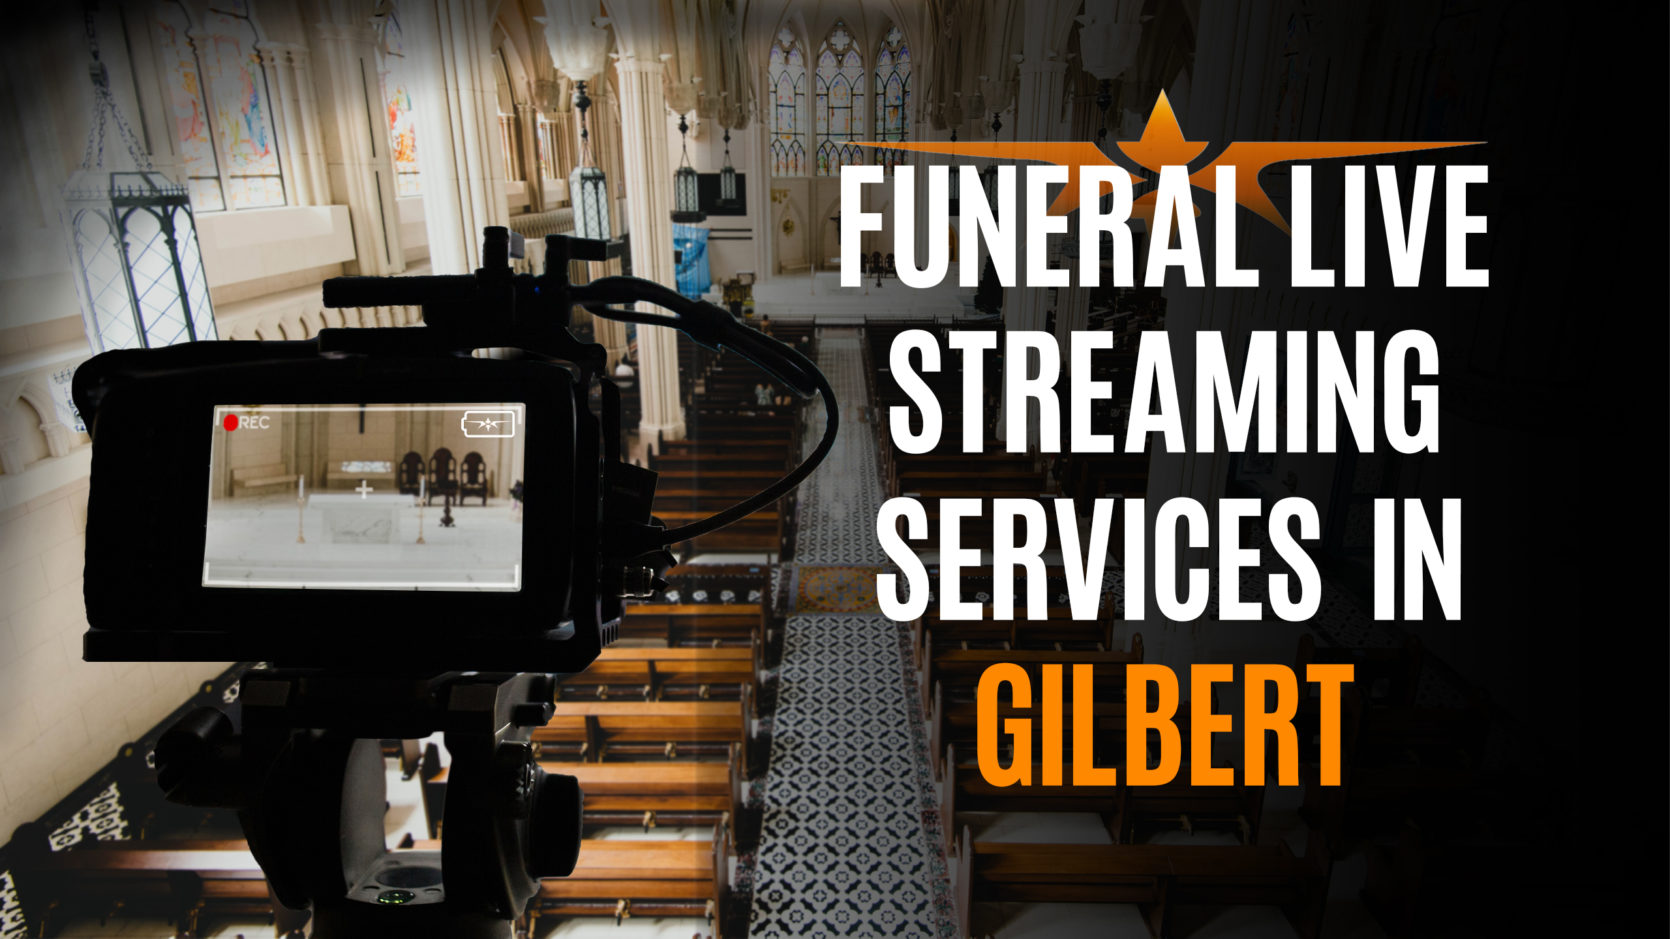 Funeral Live Streaming Services in Gilbert